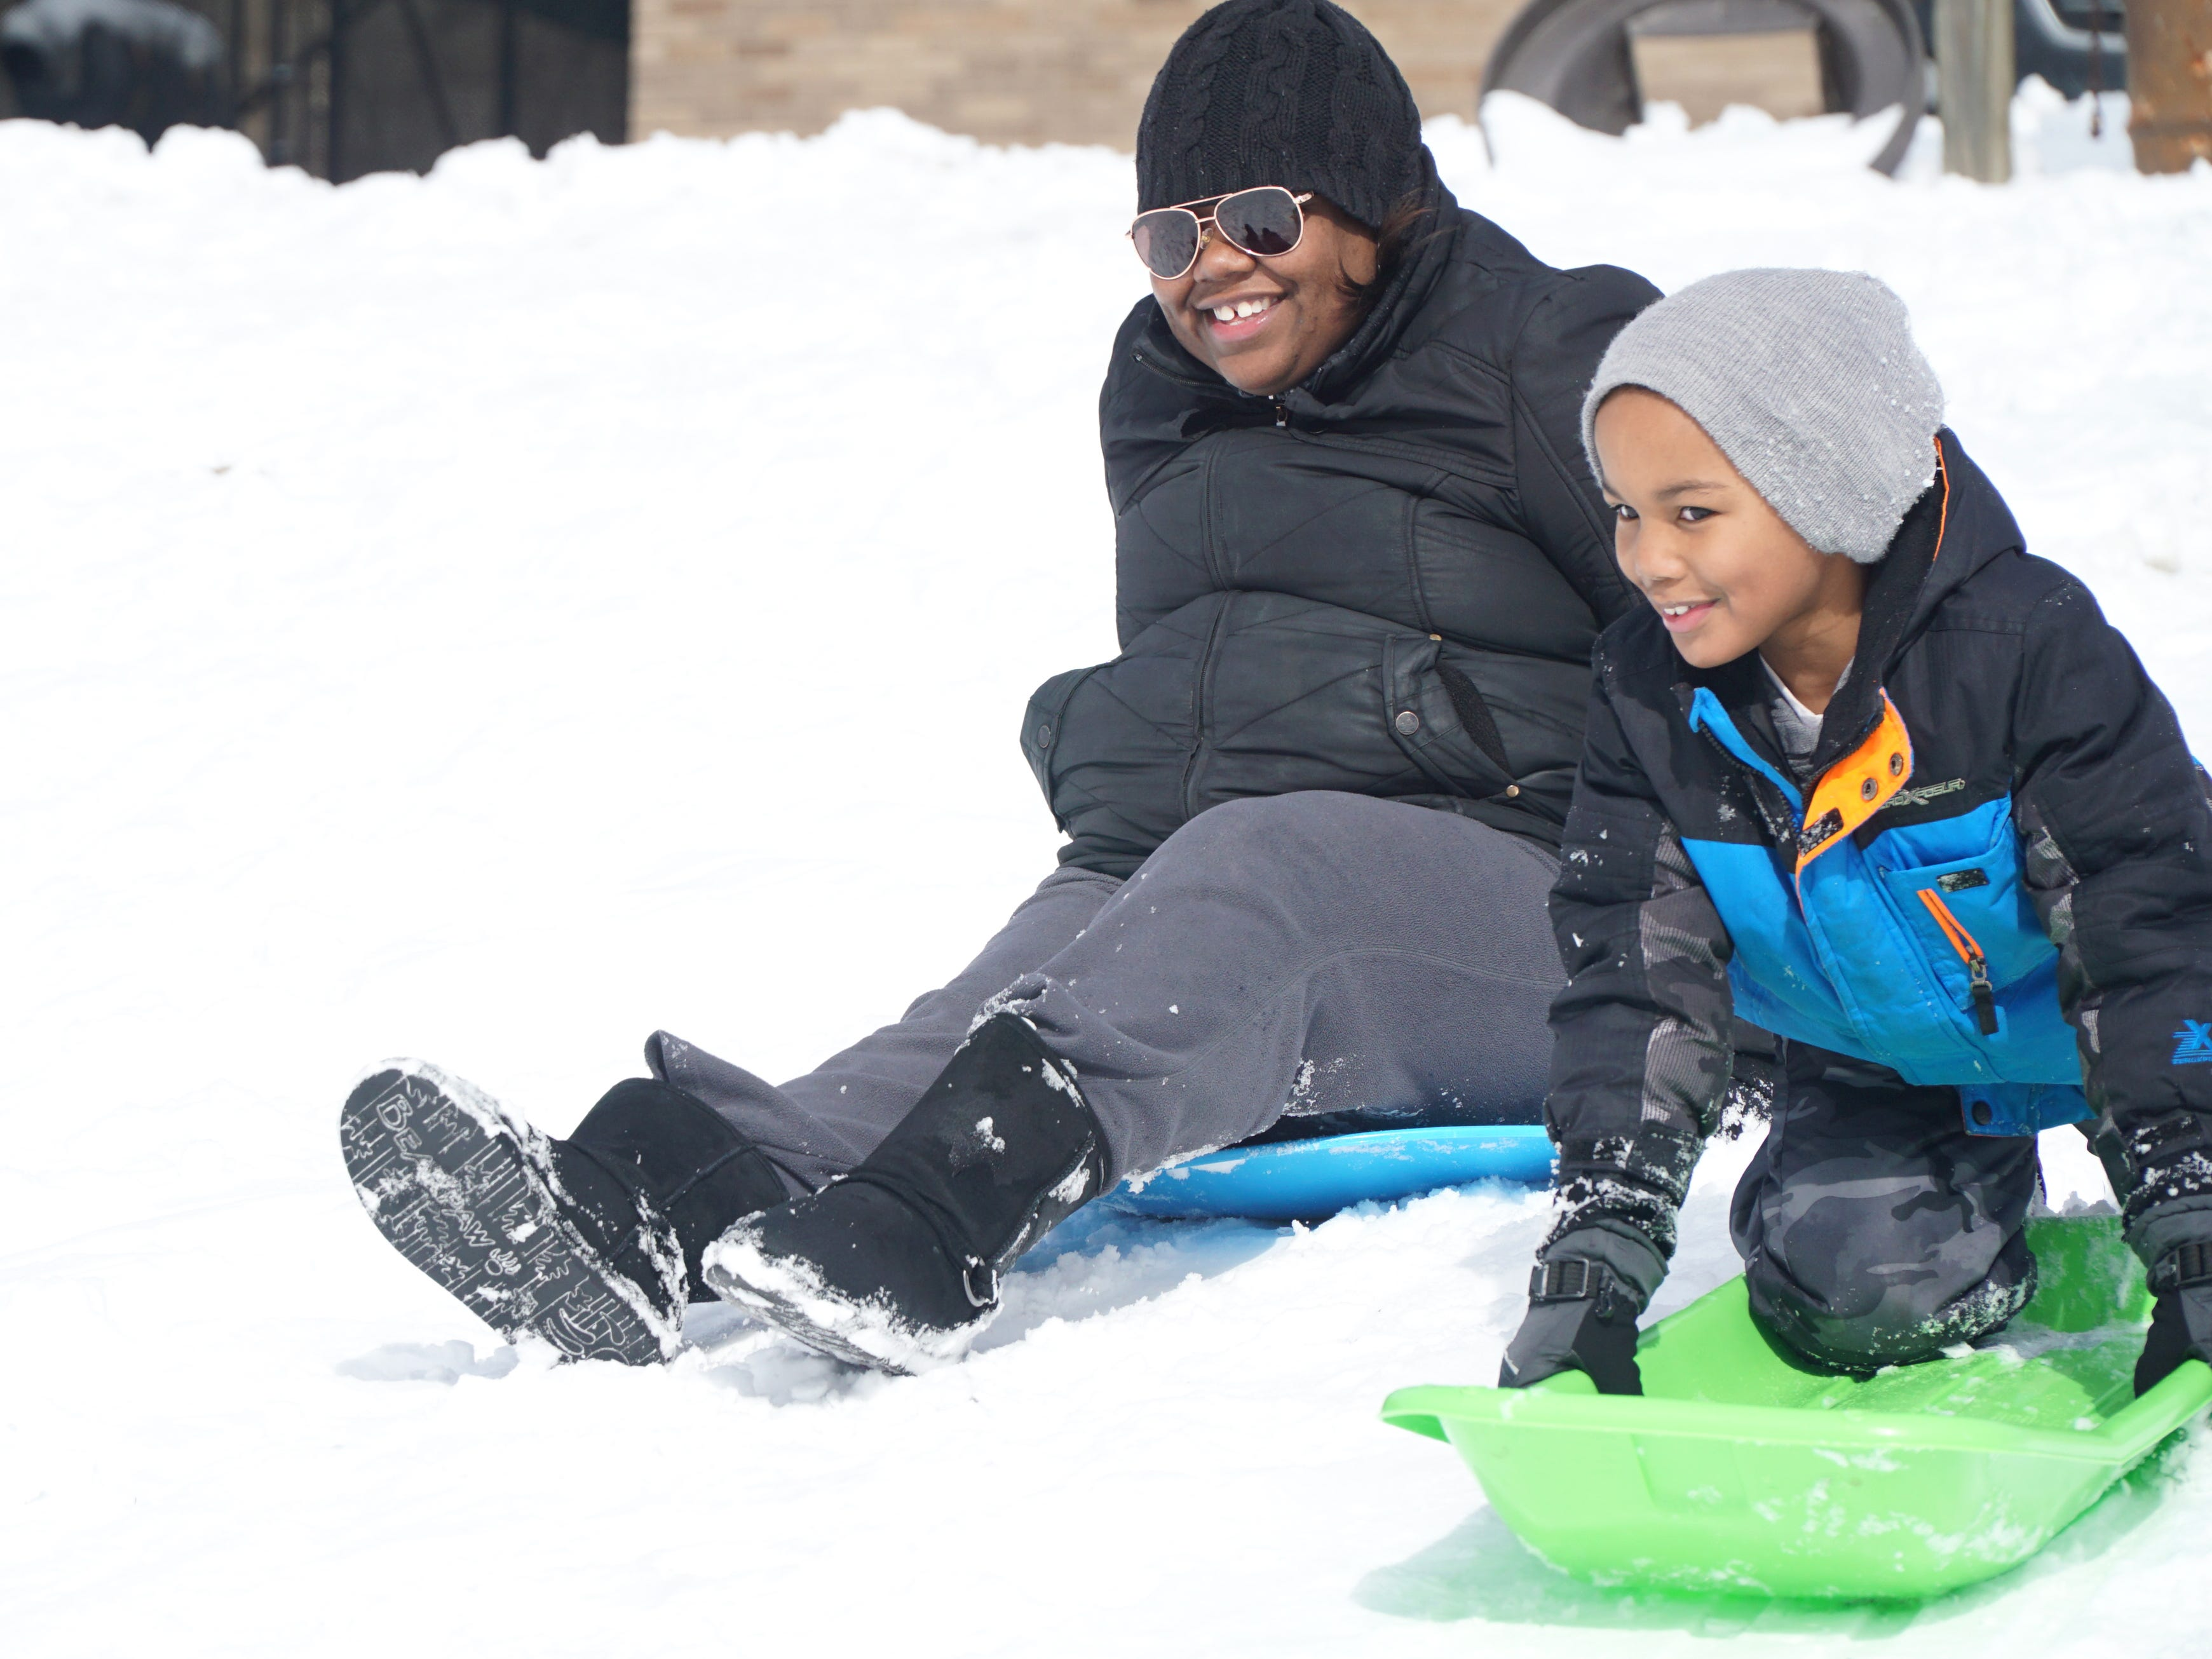 Shara Marbry races her son Elijah, 6, to the bottom of the Sled Hill on Shiawasee in Farmington.